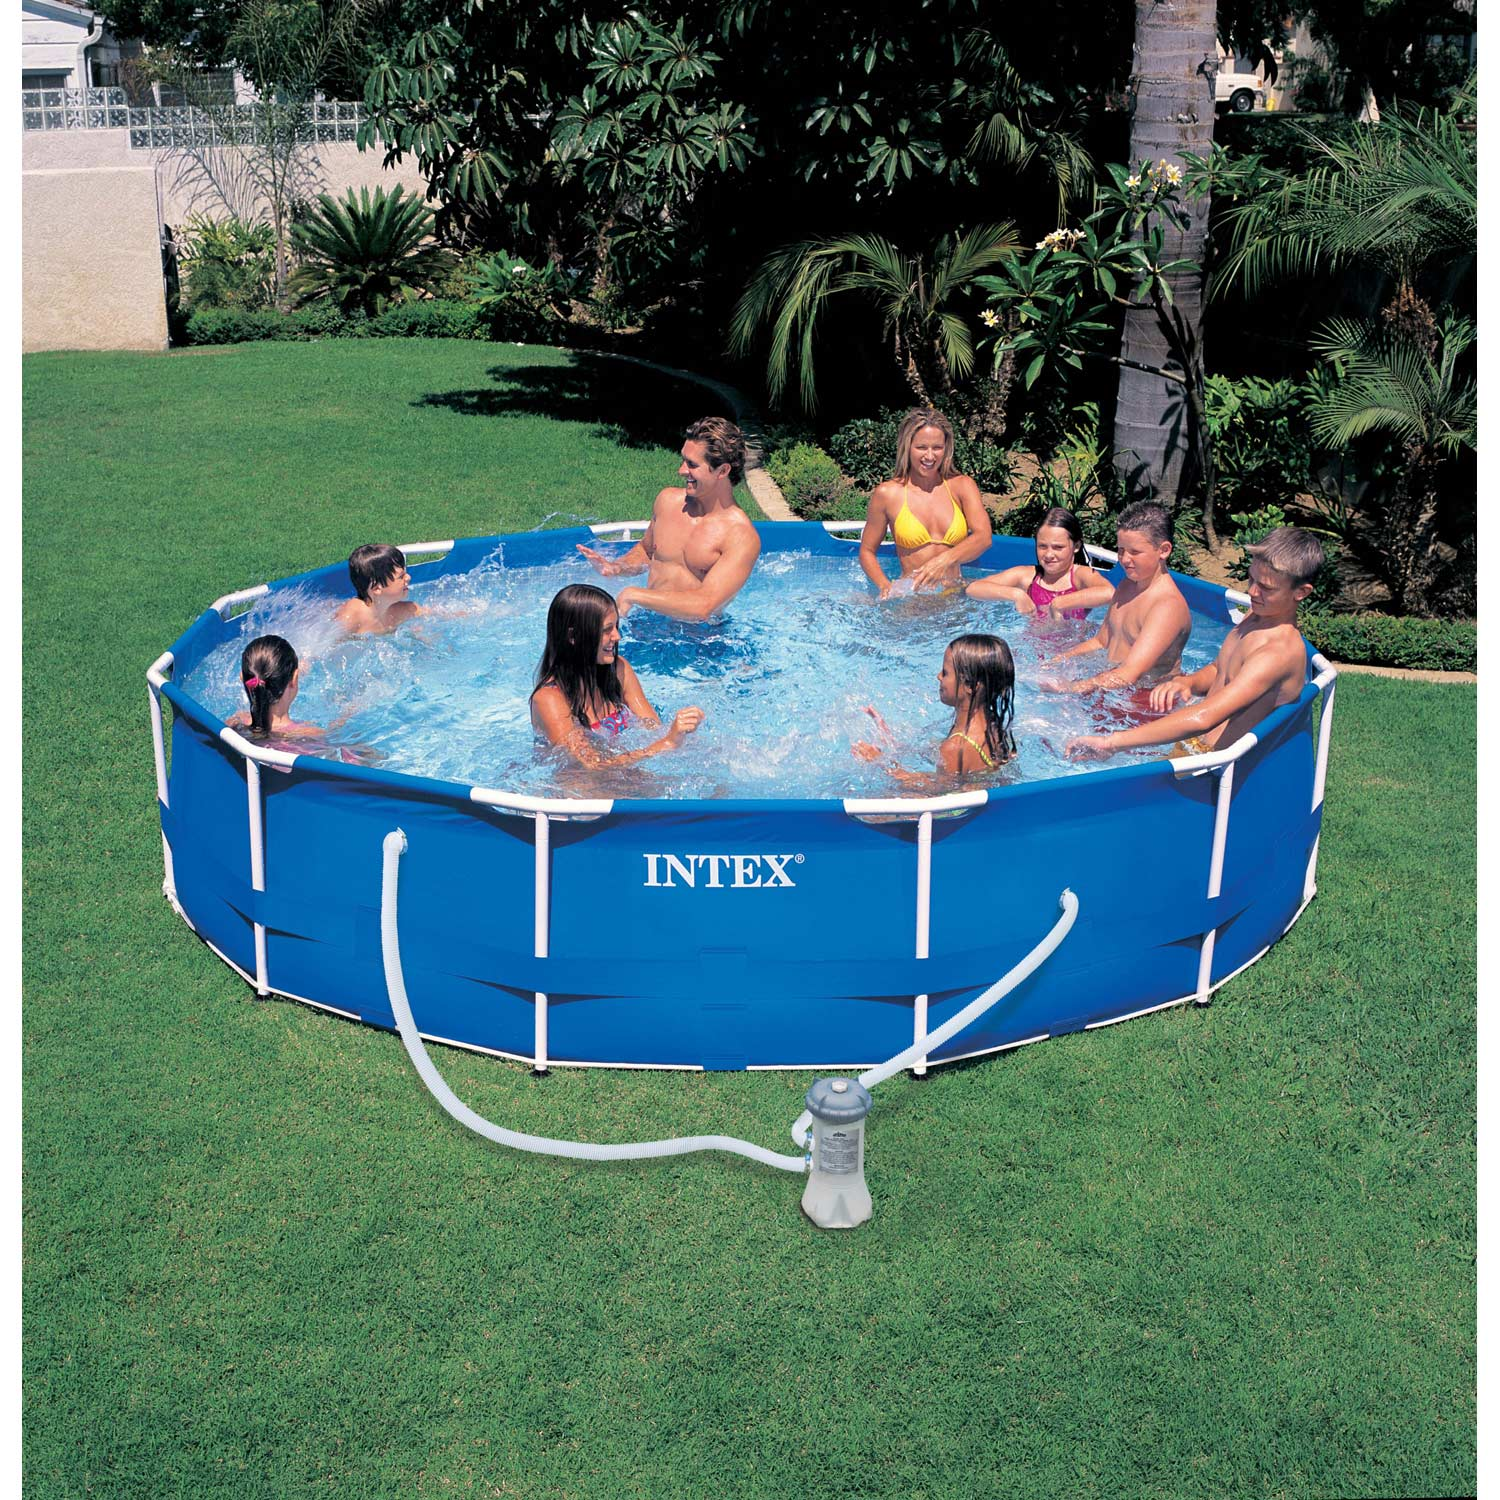 Piscine hors sol autoportante tubulaire metal frame intex for Piscine demontable hors sol